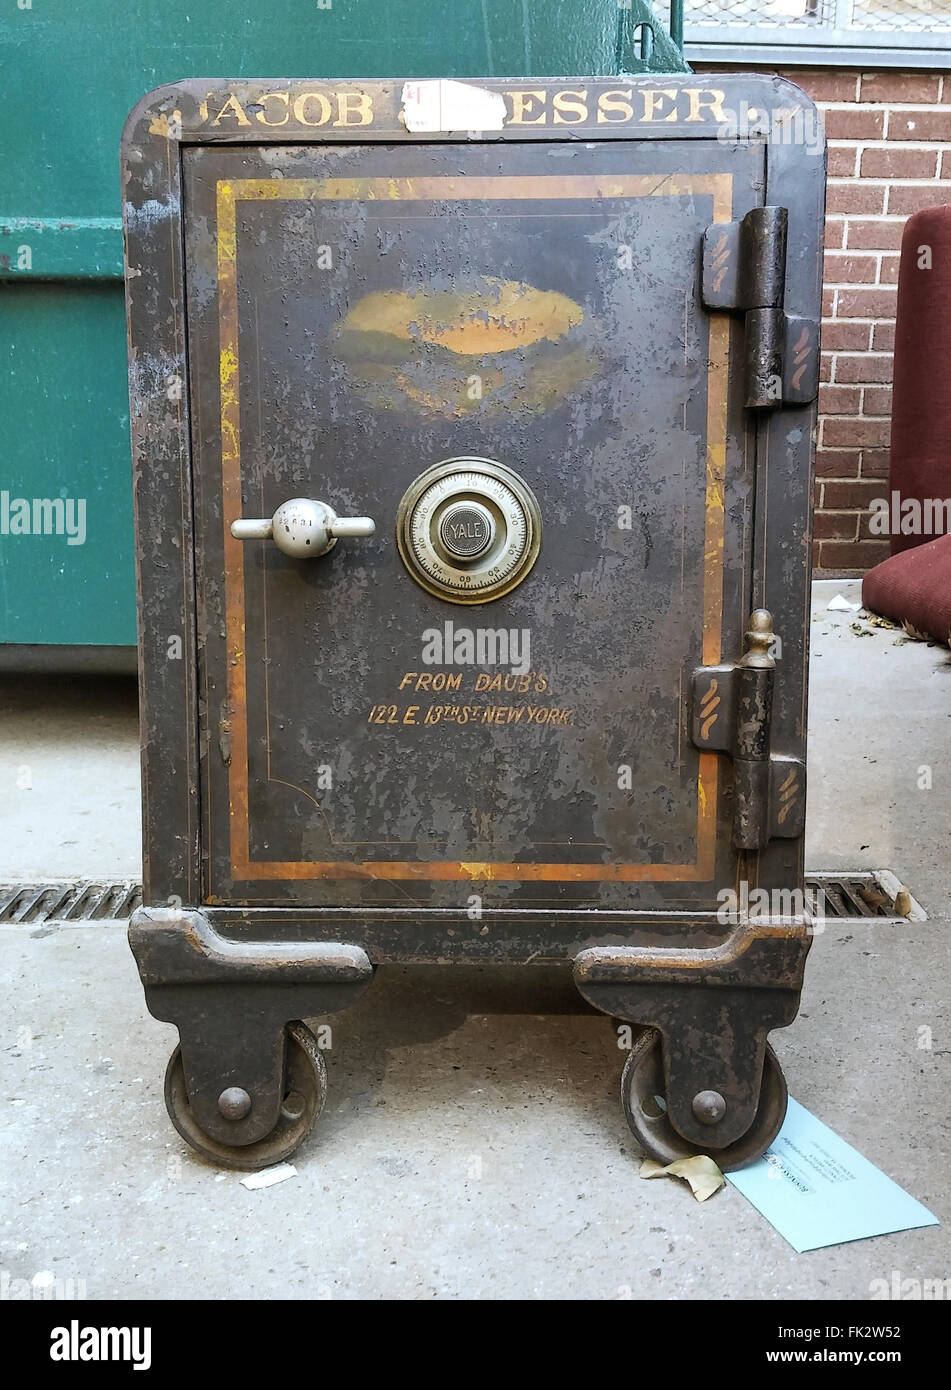 A safe is seen in the trash area of an apartment building in New York on Wednesday, March 2, 2016. (© Richard - Stock Image